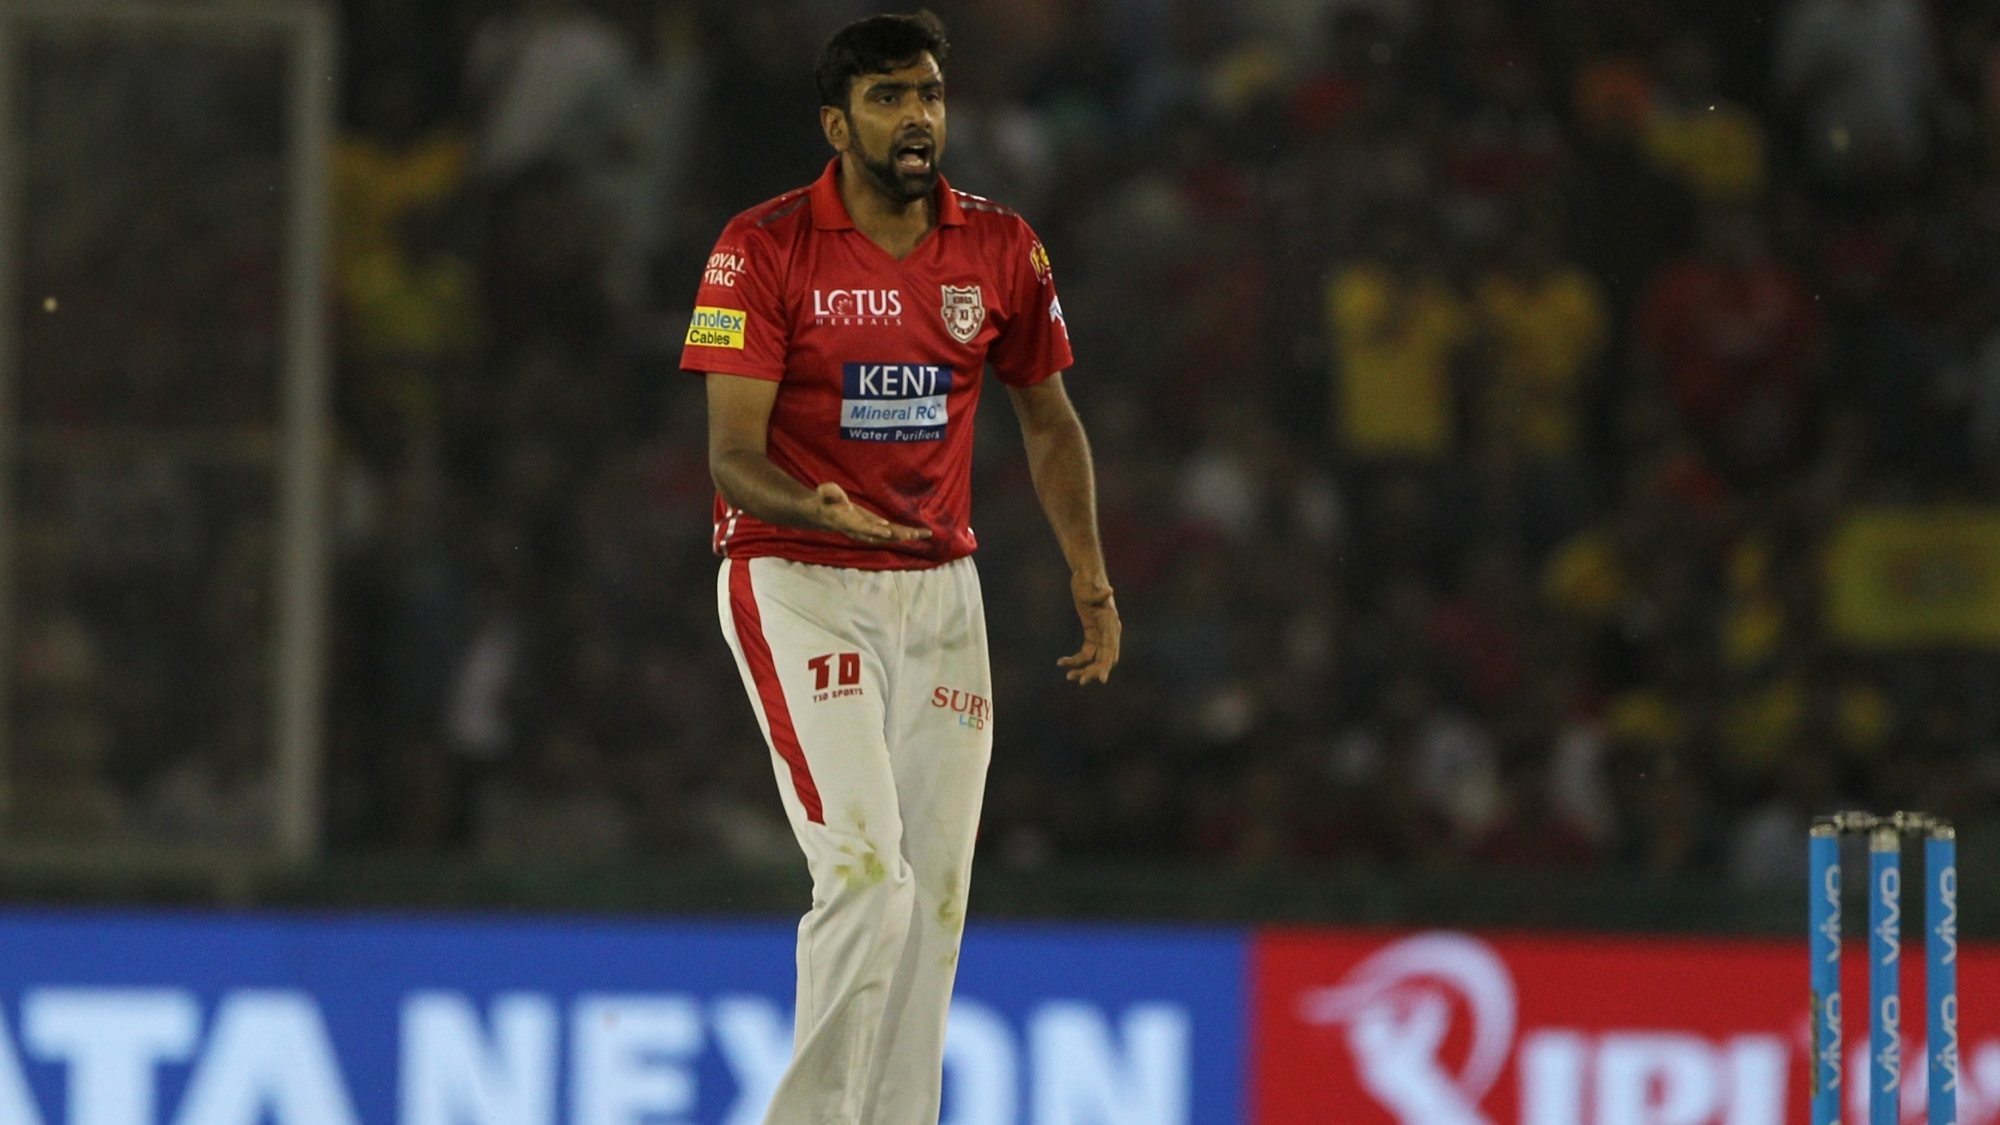 IPL 2018: Ravichandran Ashwin dejected after KXIP's humiliating loss to RCB